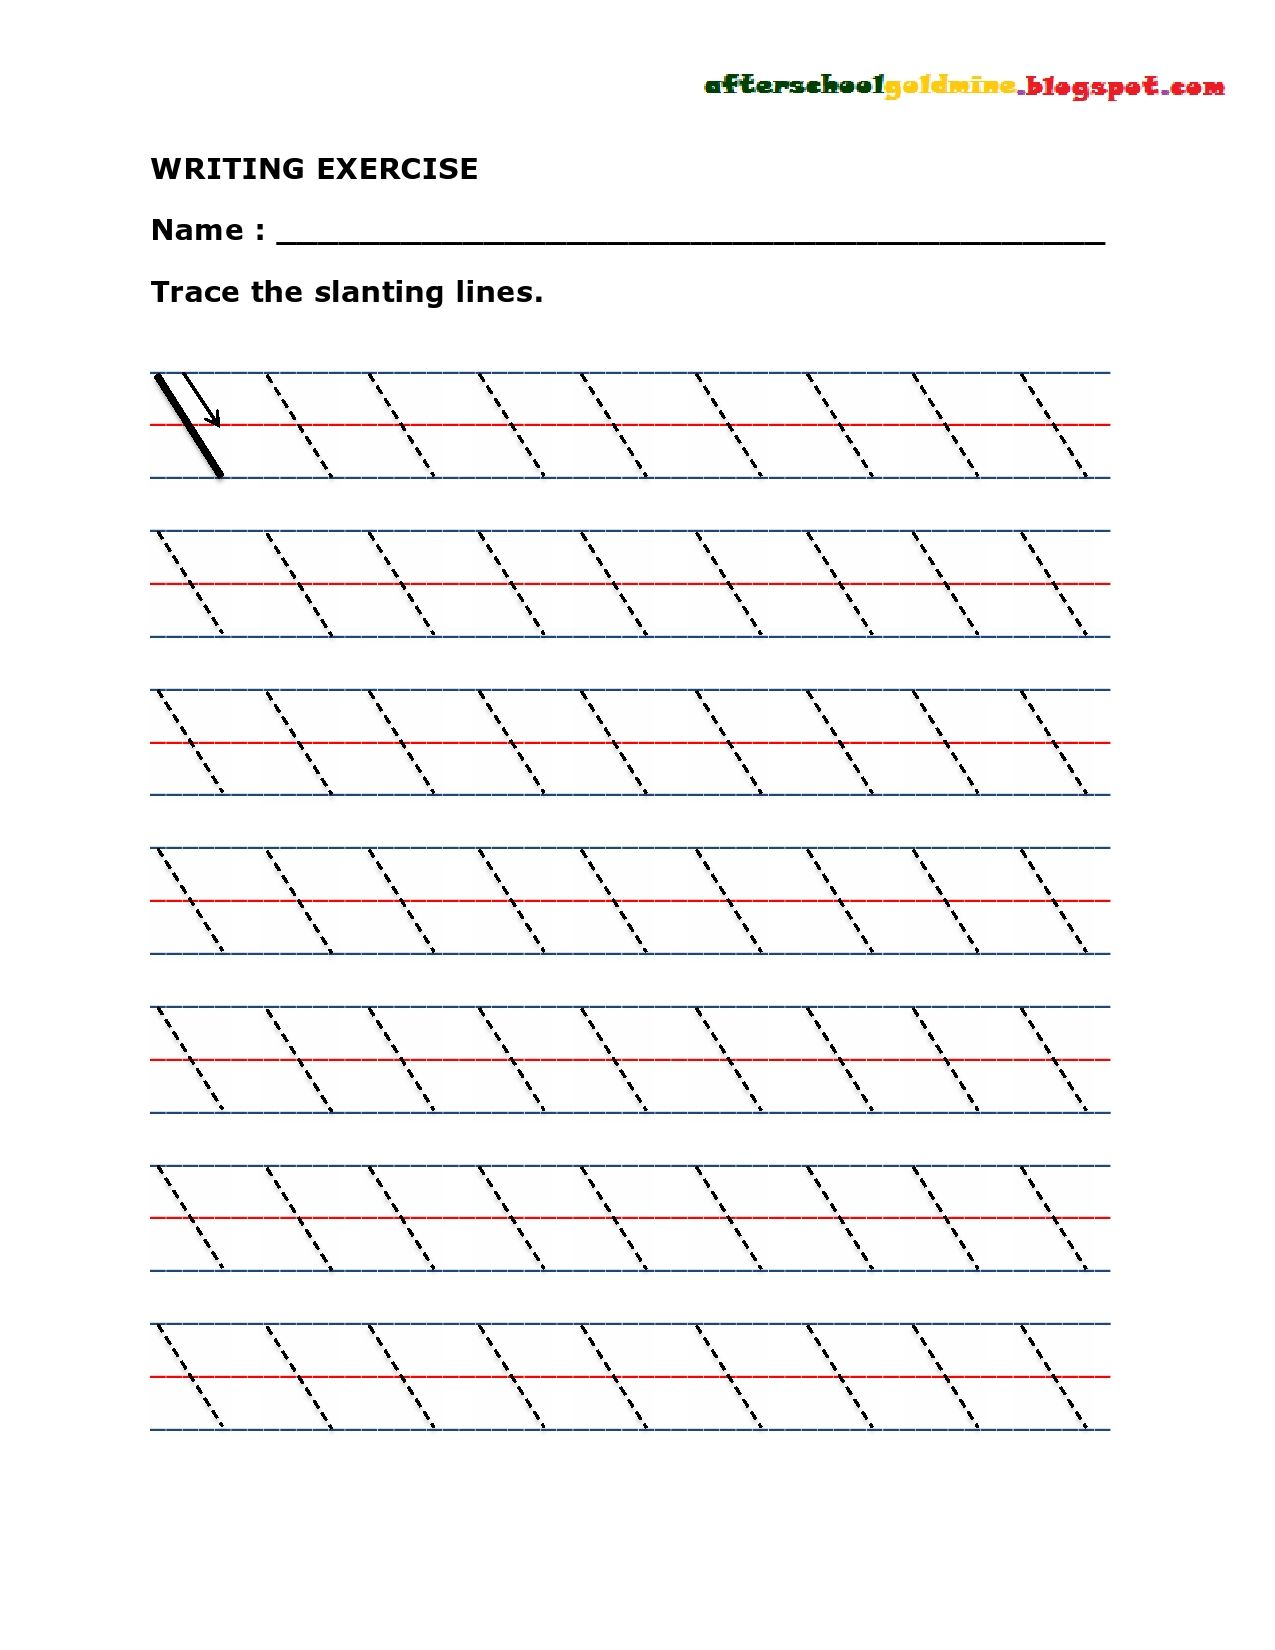 Writing Exercise Trace Lines Diagonal Writing Exercises